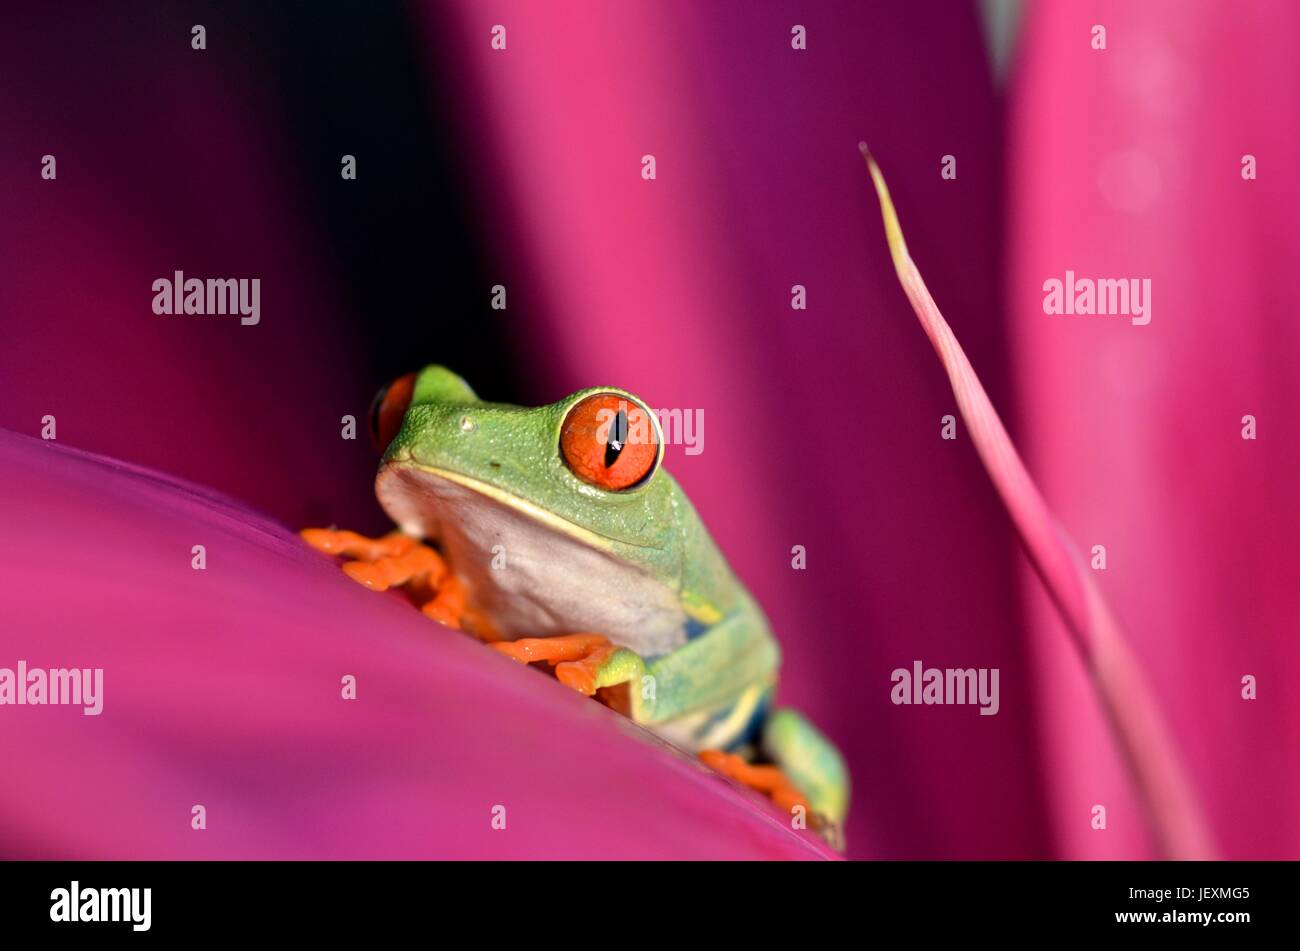 A red eyed tree frog, Agalychnis callidryas, rests on a leaf at Tortuguero National Park. - Stock Image